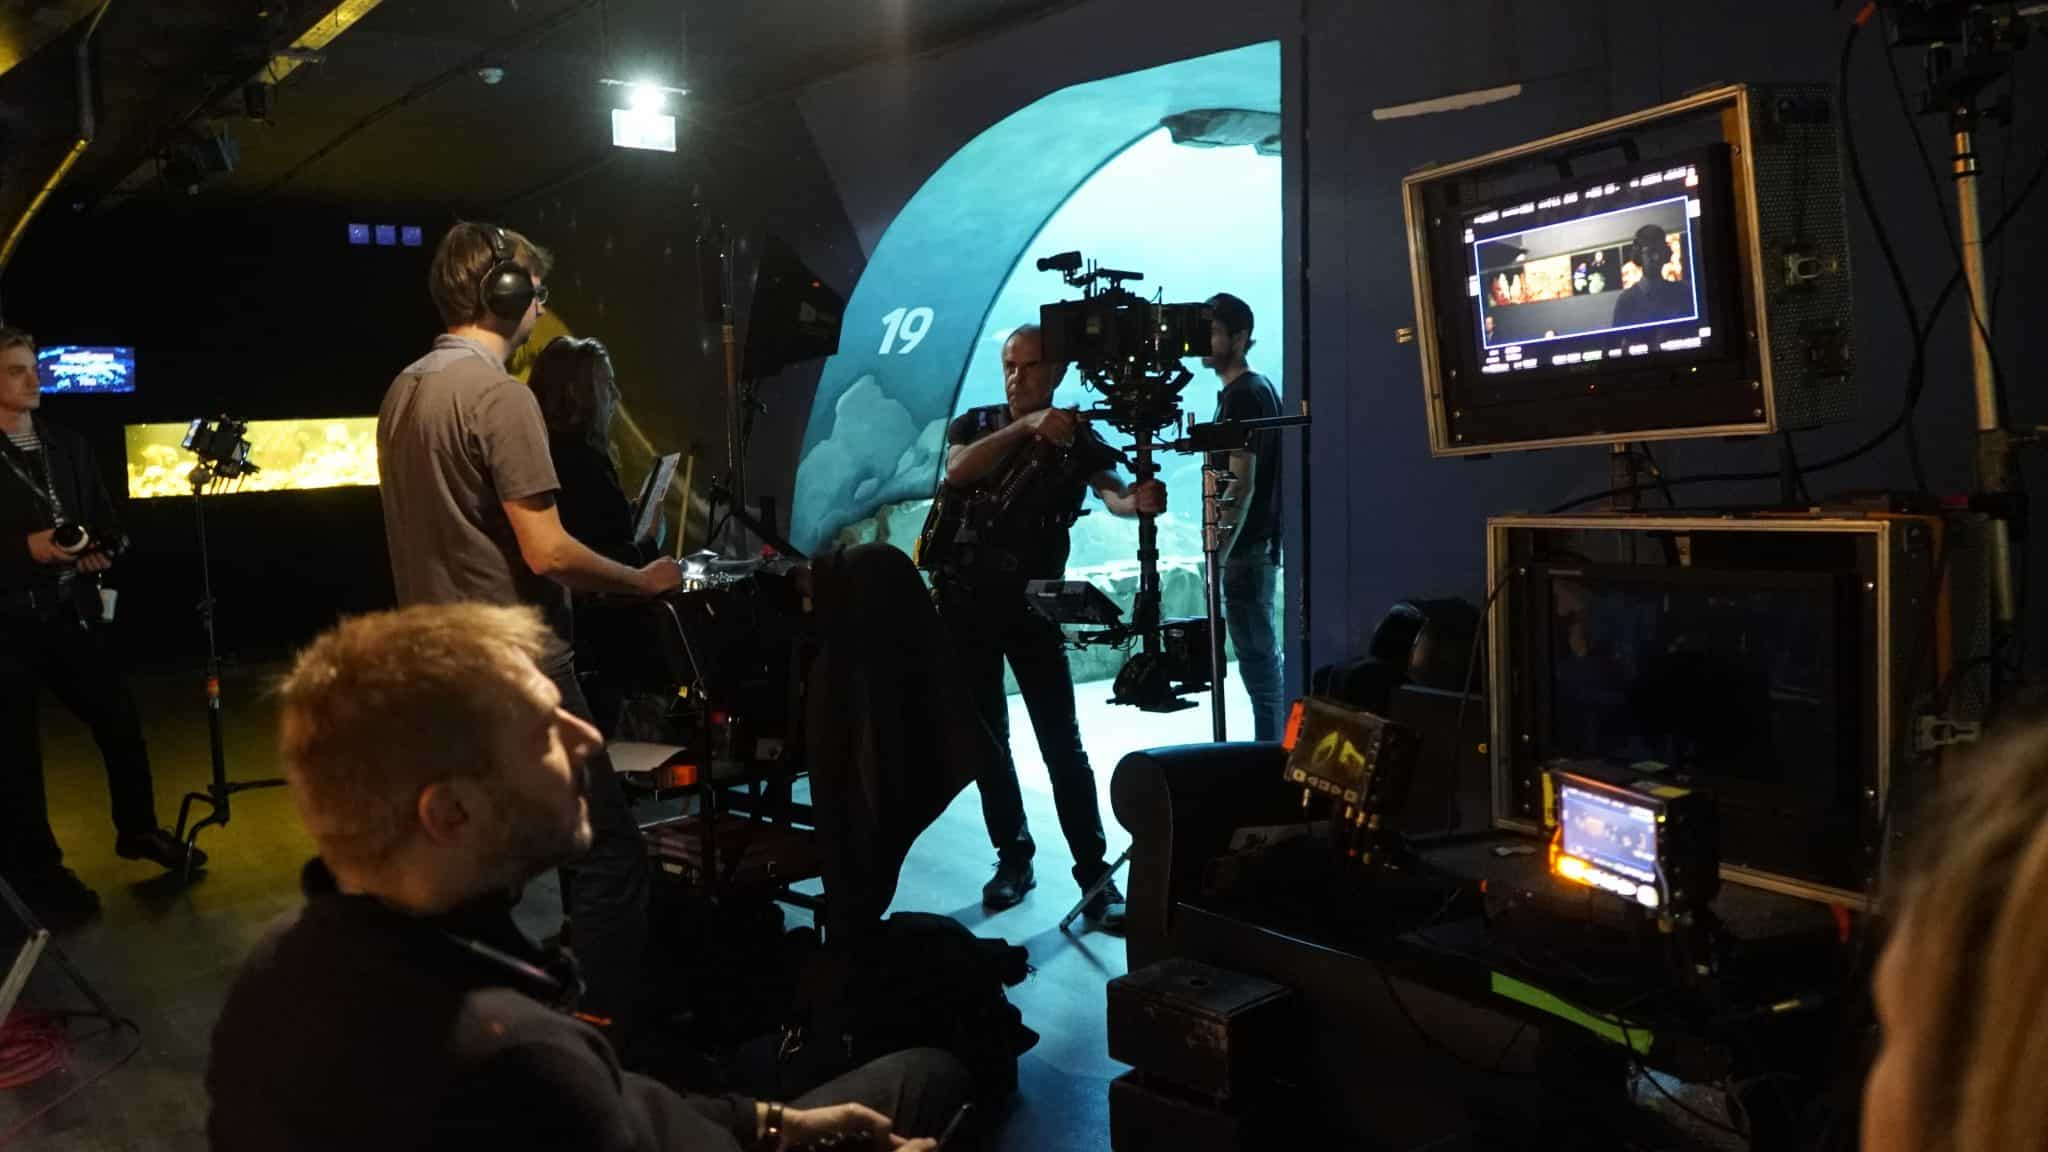 Tournage tunnel regie steadycam - Aquarium de Paris